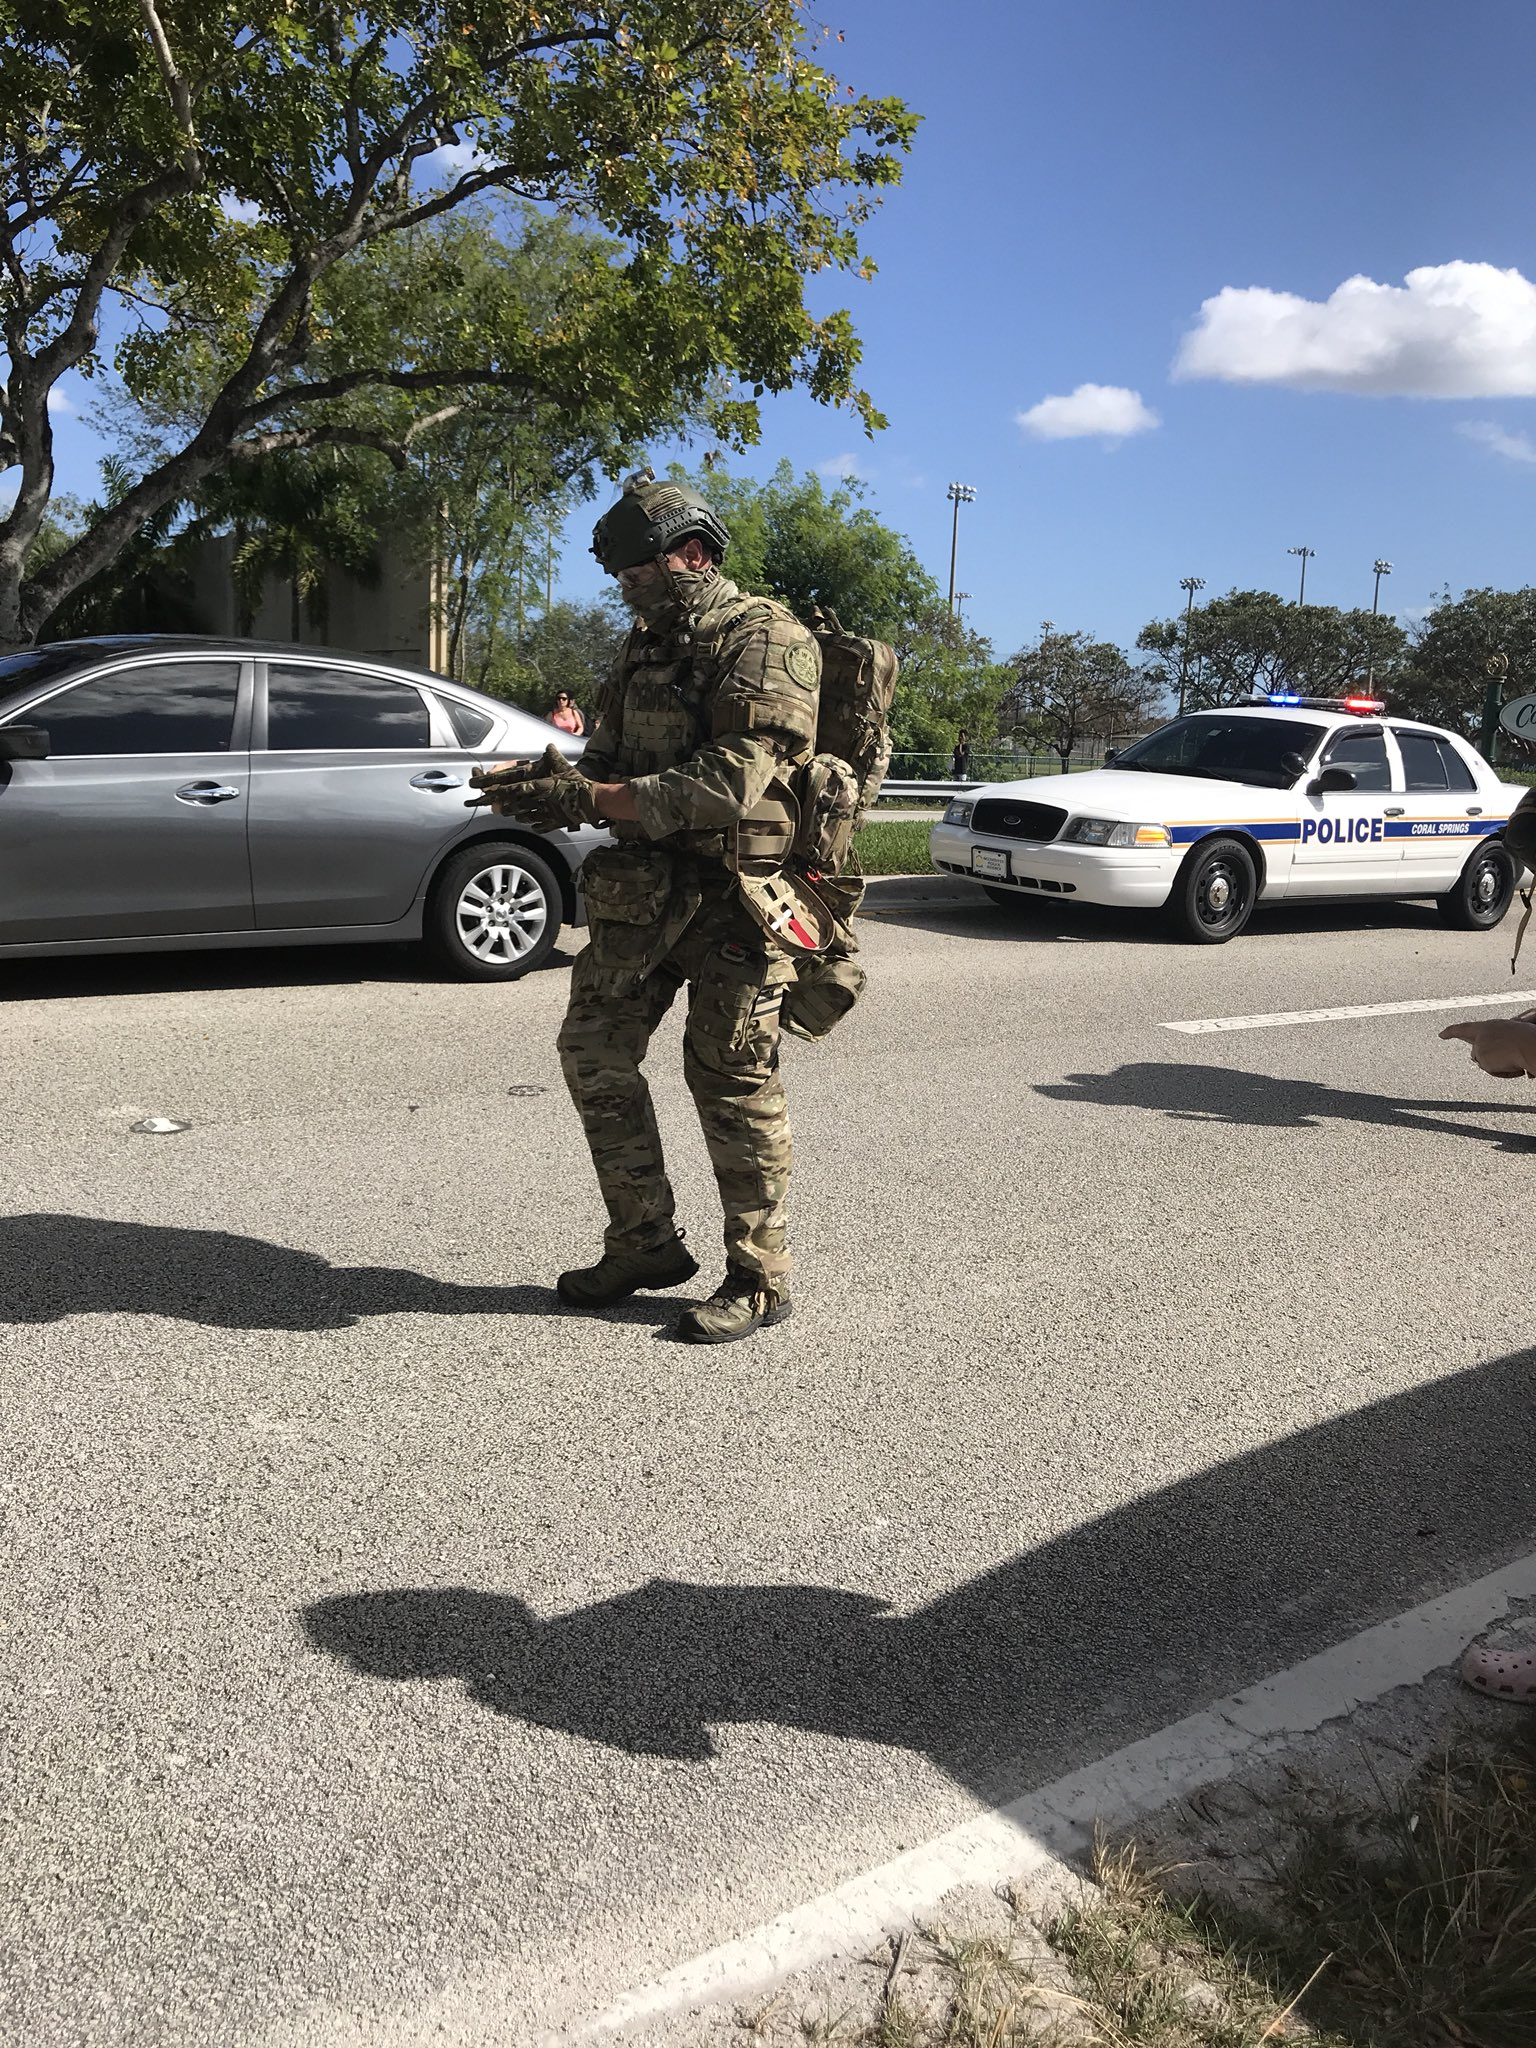 "<div class=""meta image-caption""><div class=""origin-logo origin-image wls""><span>wls</span></div><span class=""caption-text"">Photos show a police response to reports of shots fired at a Florida high school. (grumpyhaus/Twitter)</span></div>"